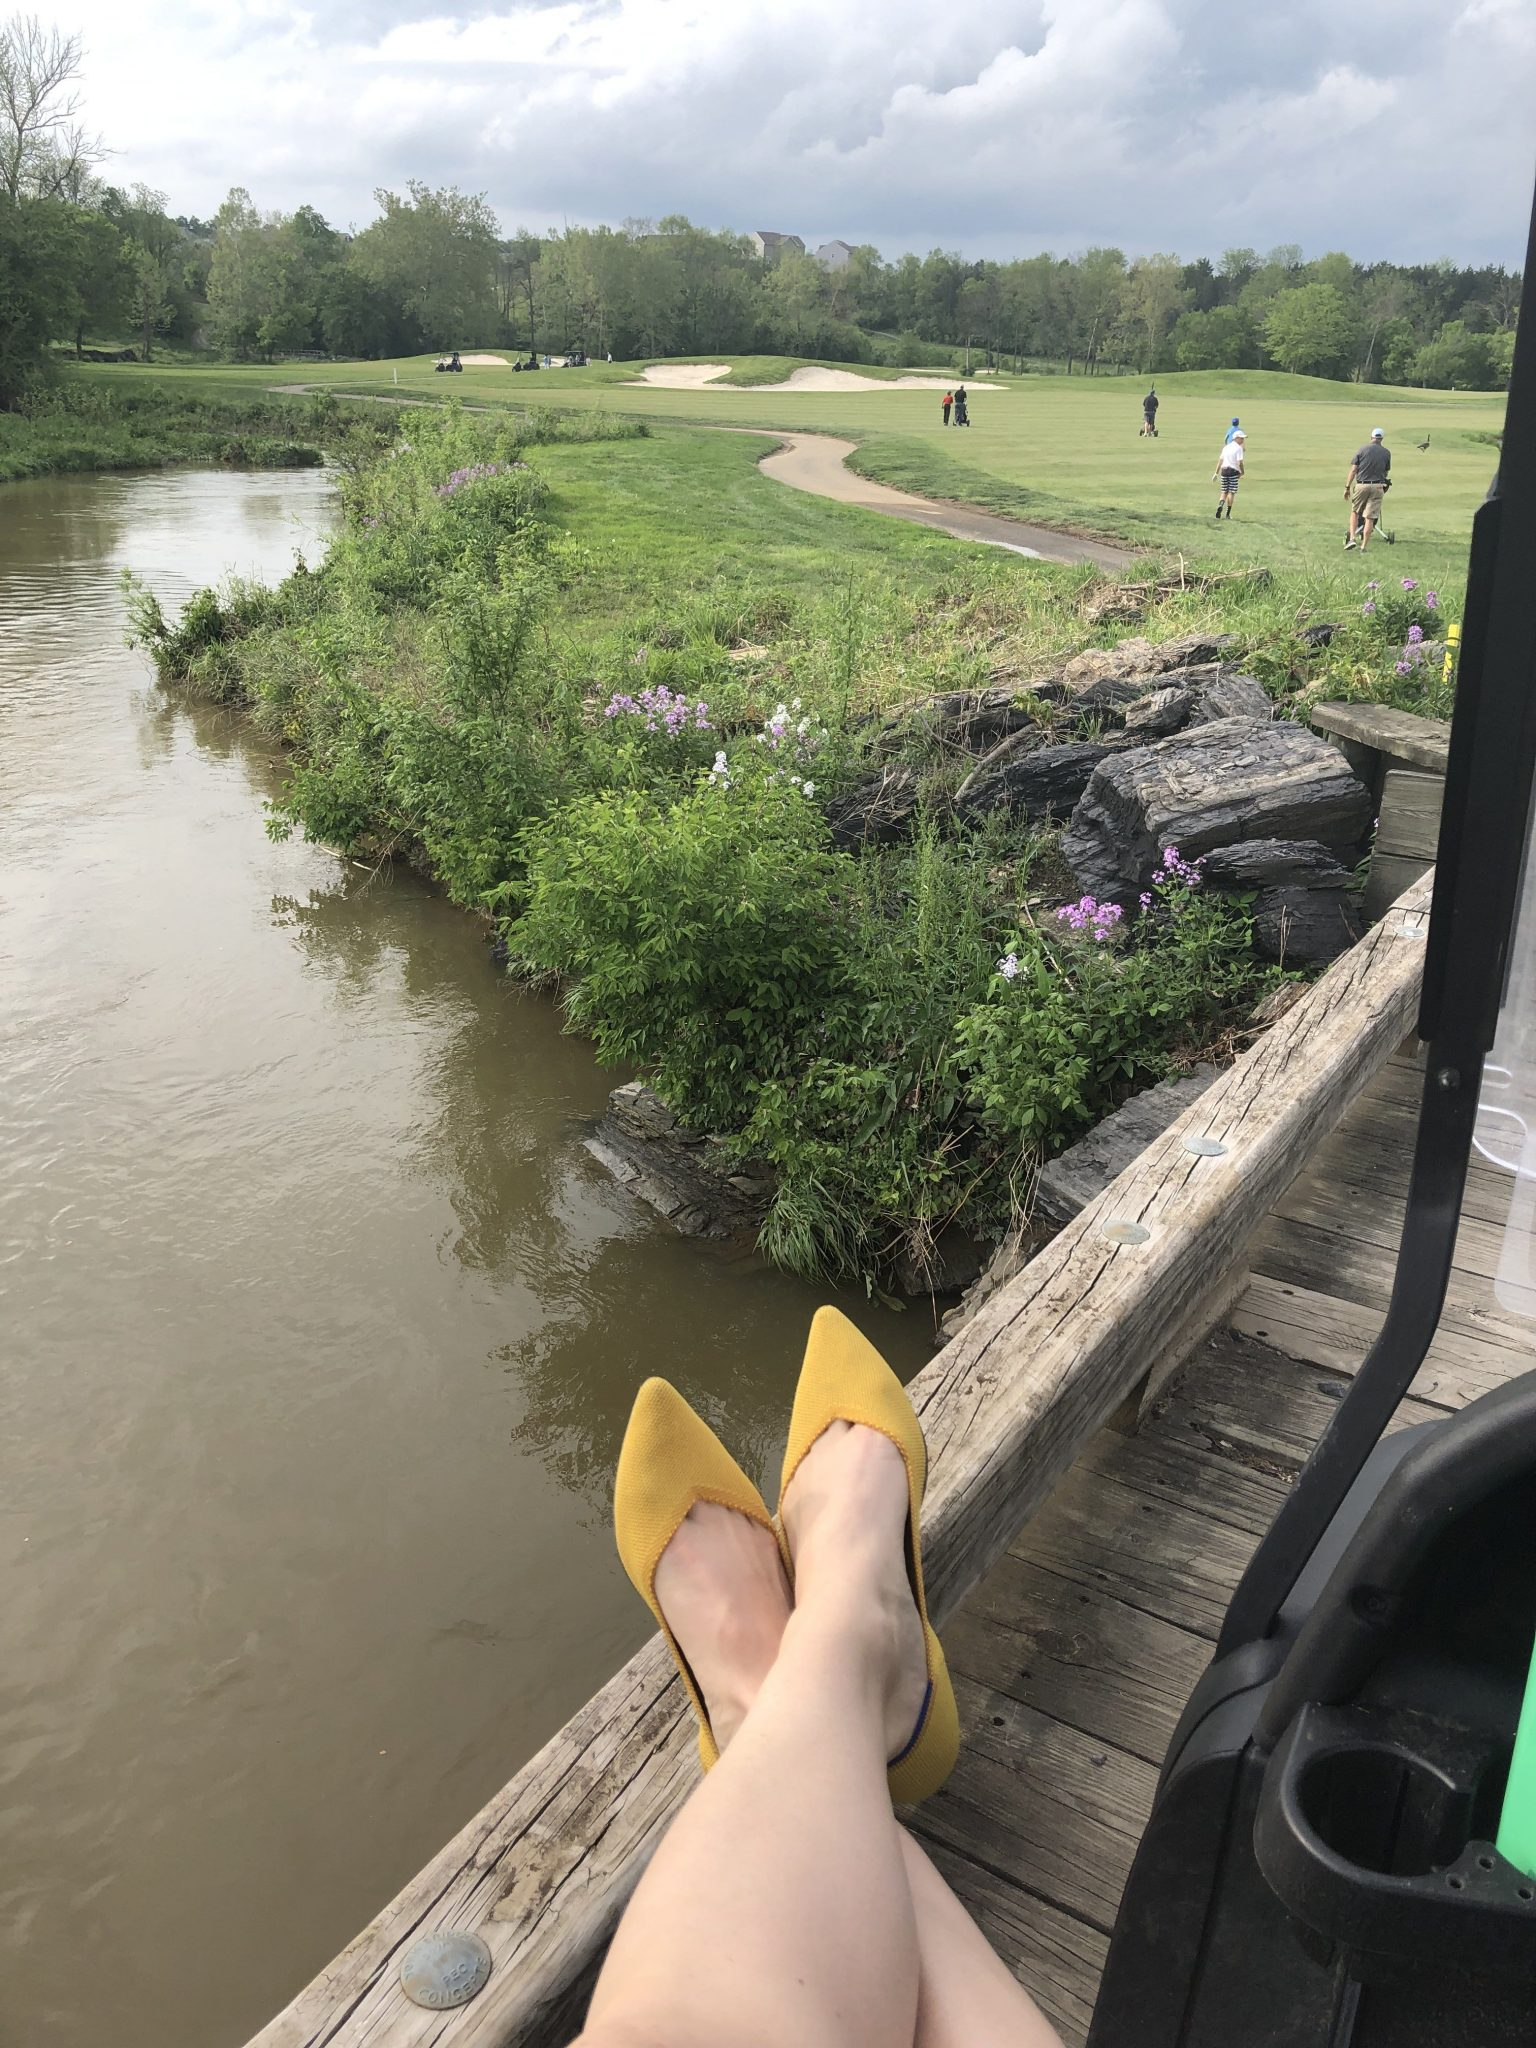 Rothy's on the golf course